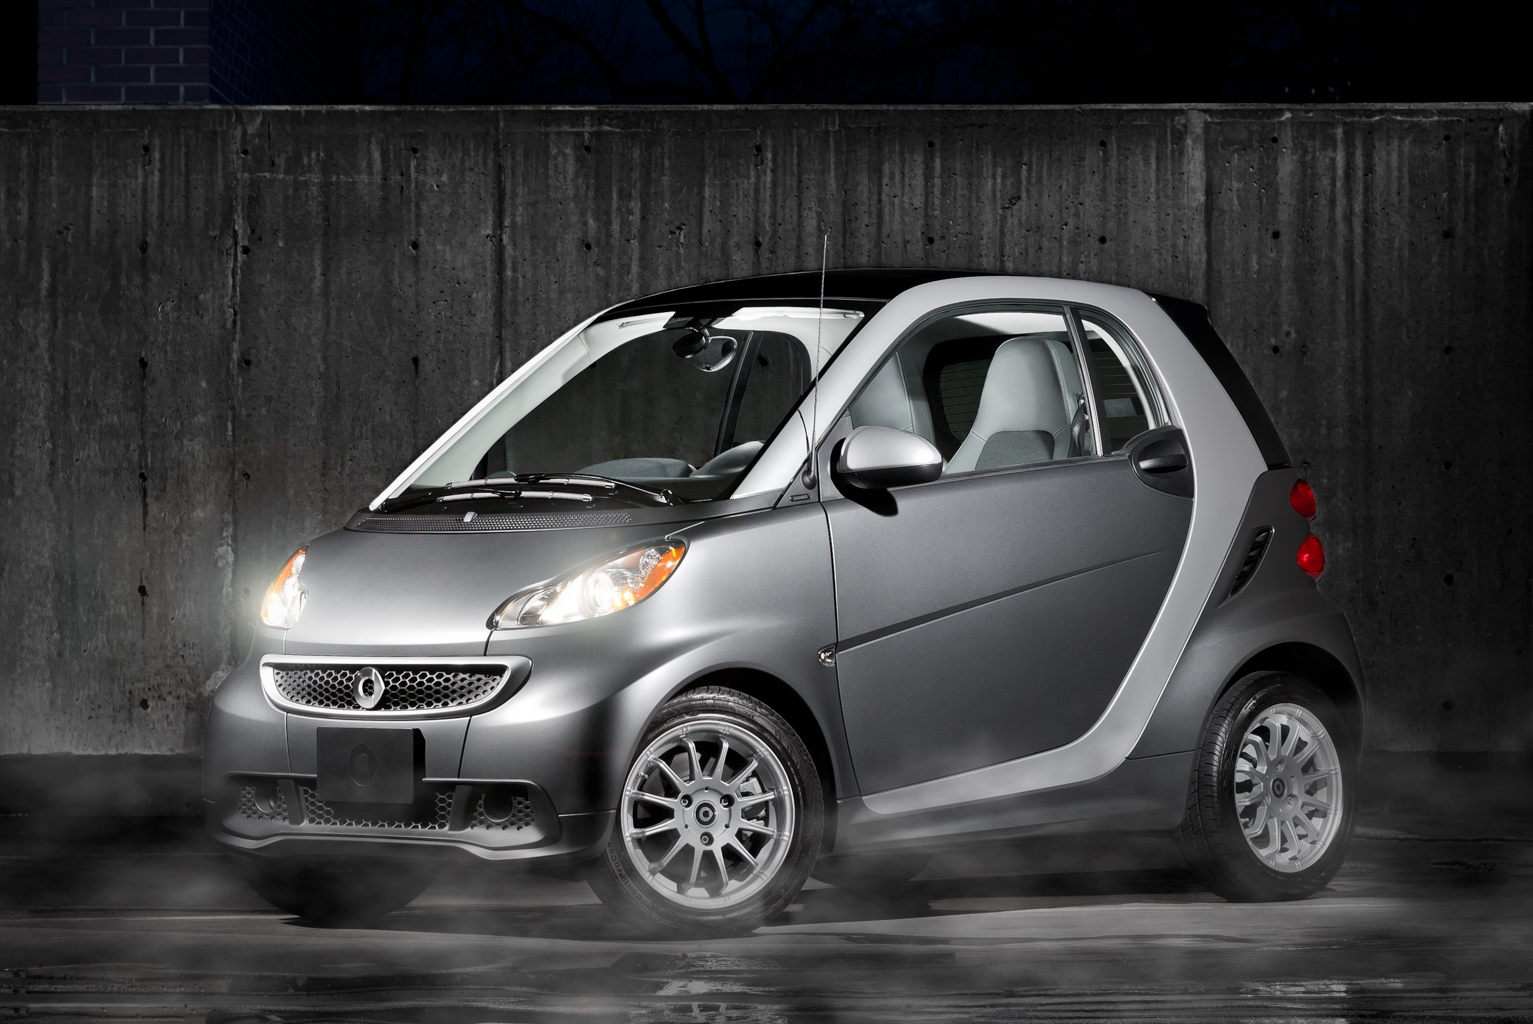 Smart car against concrete backdrop